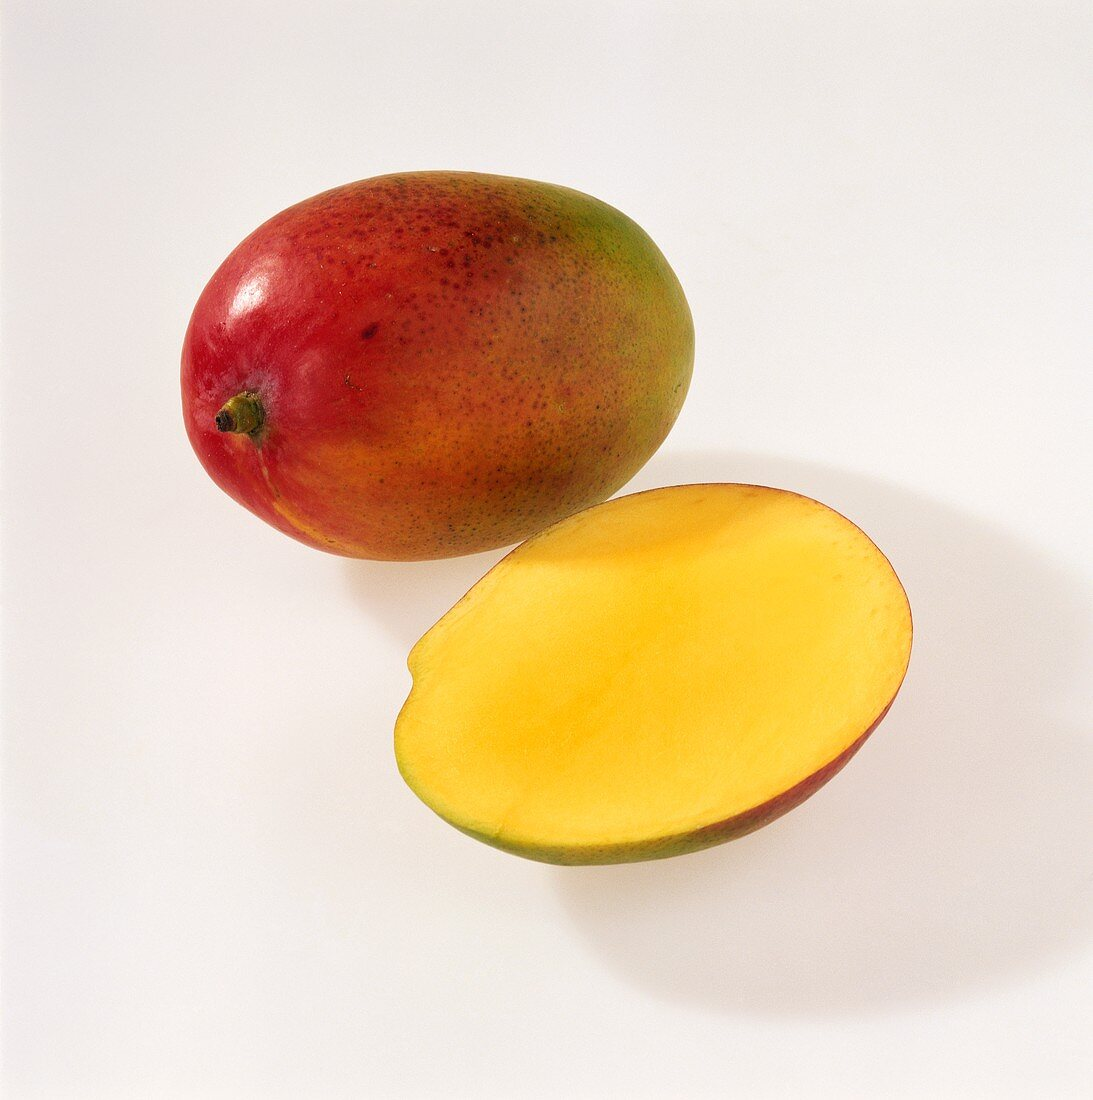 One whole and one half mango ('Parvin' variety)